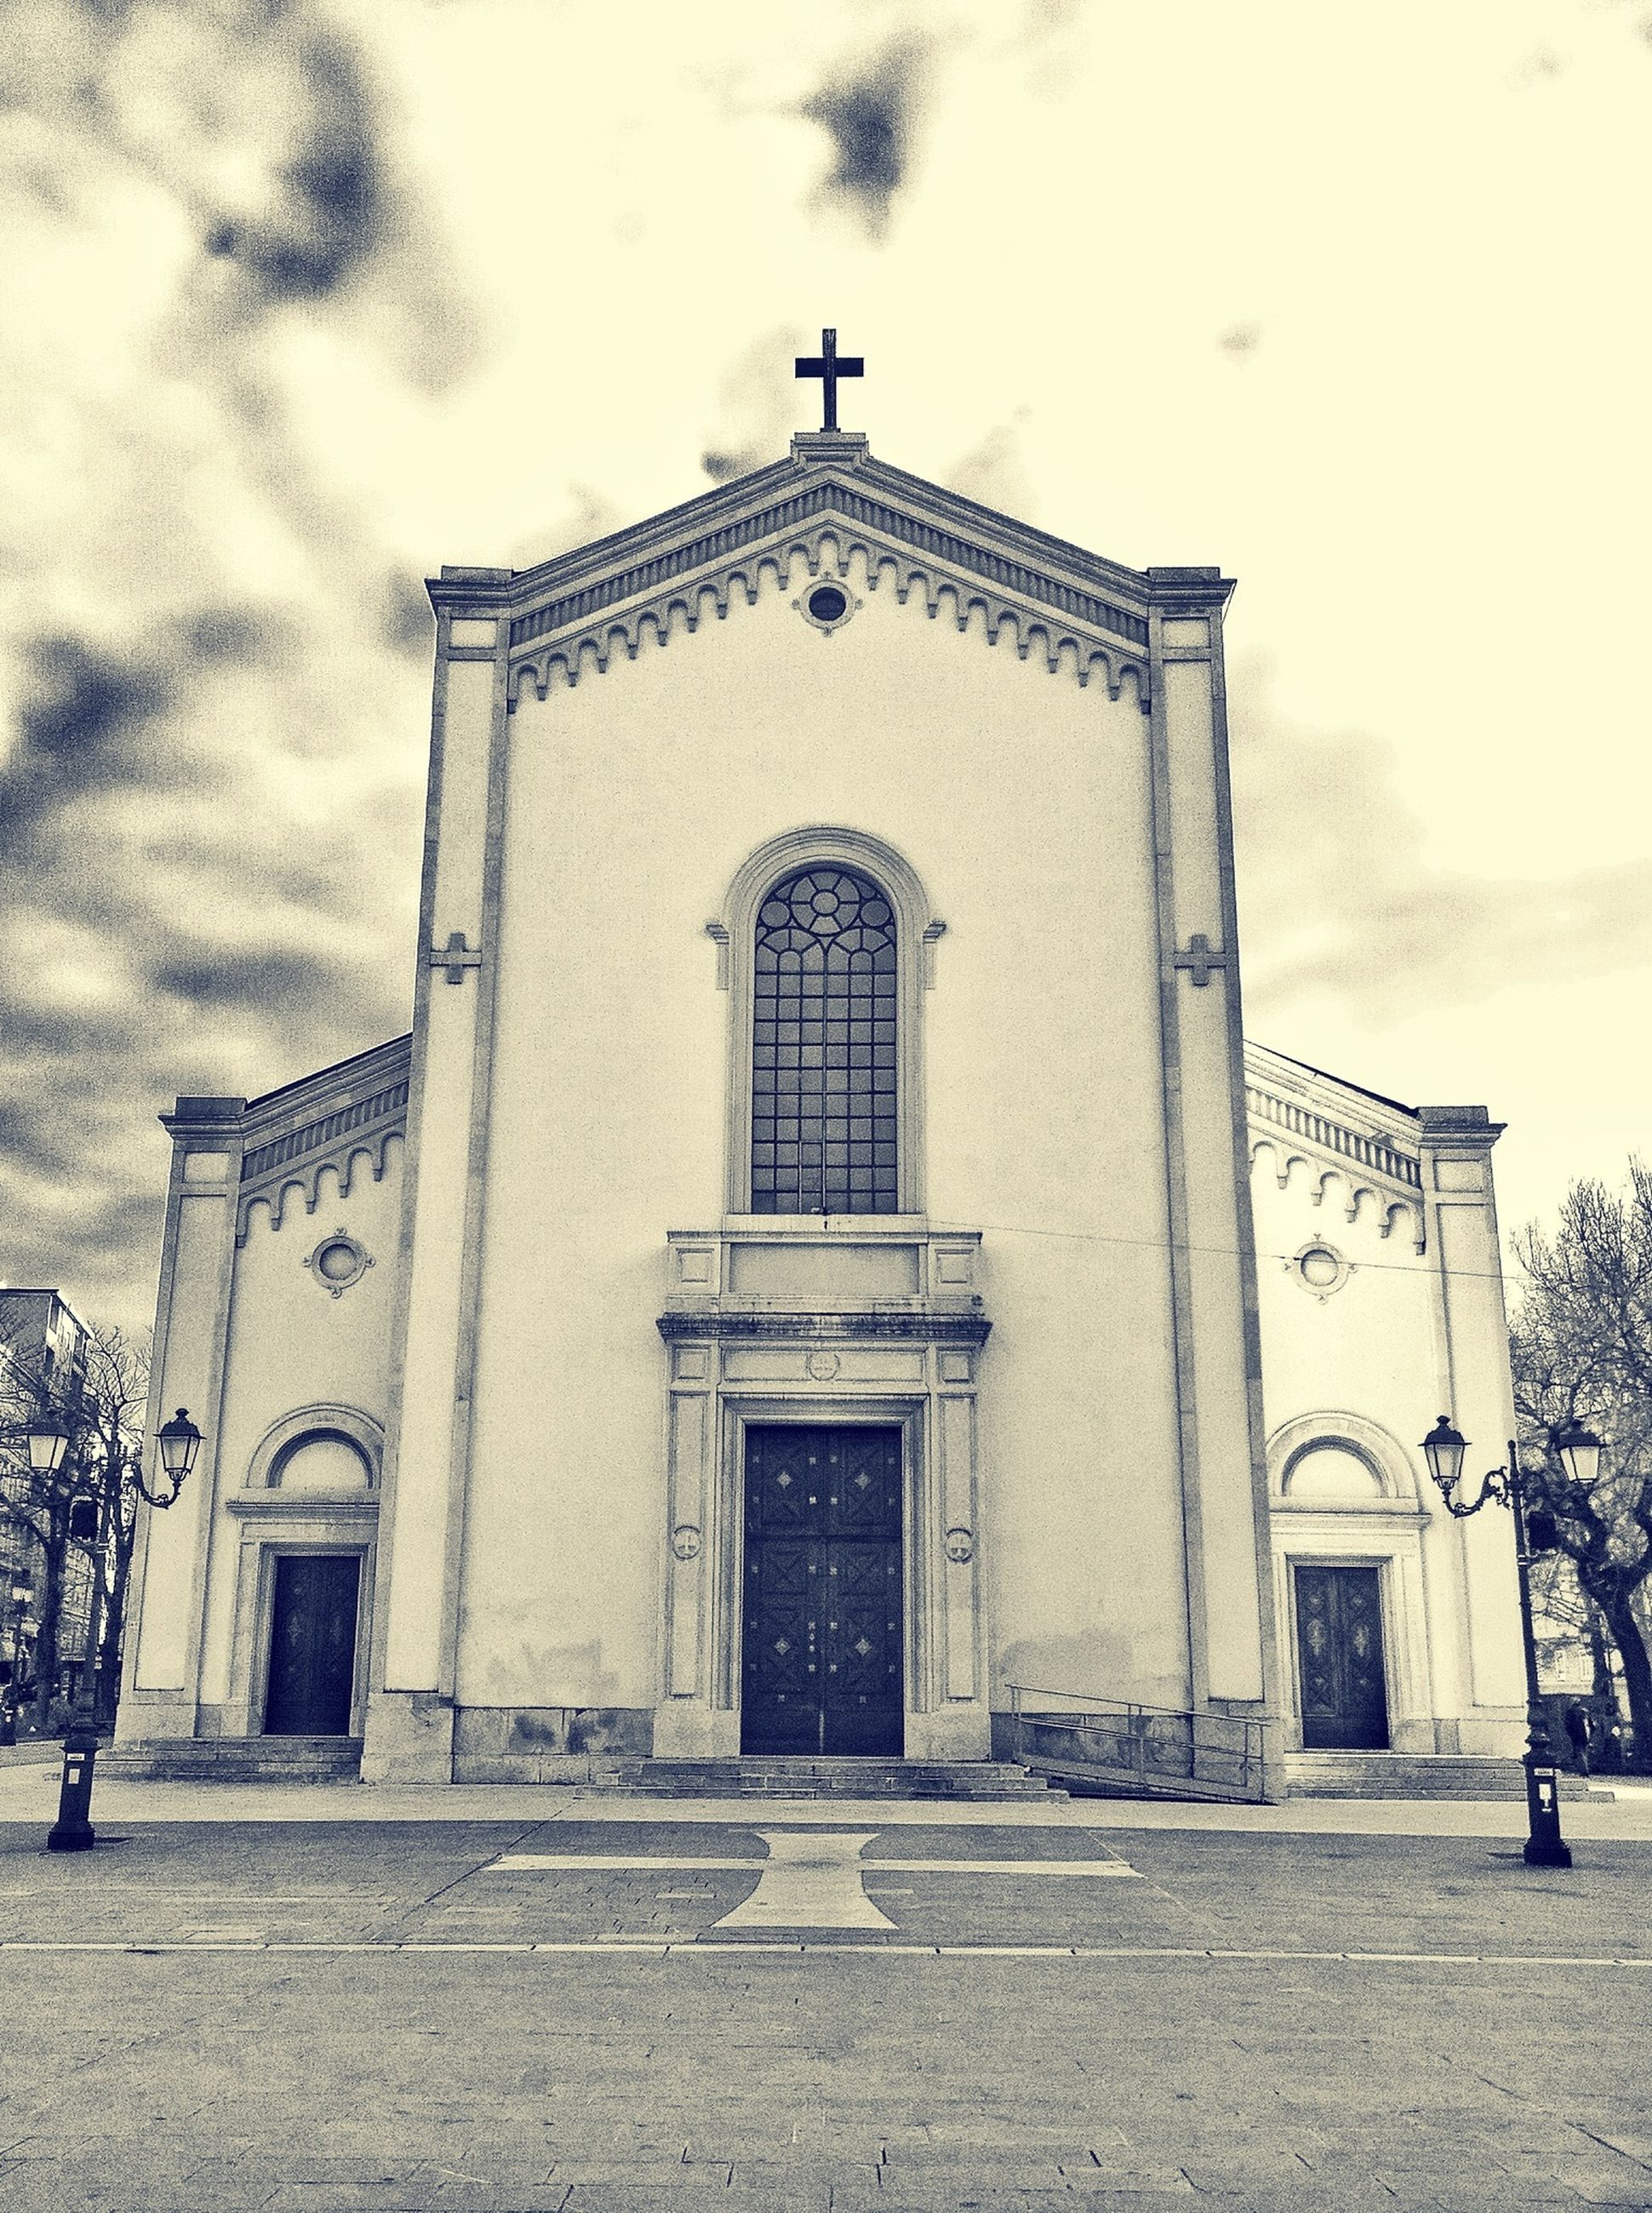 building exterior, architecture, built structure, church, religion, place of worship, sky, spirituality, facade, entrance, door, low angle view, cross, cloud - sky, outdoors, day, arch, window